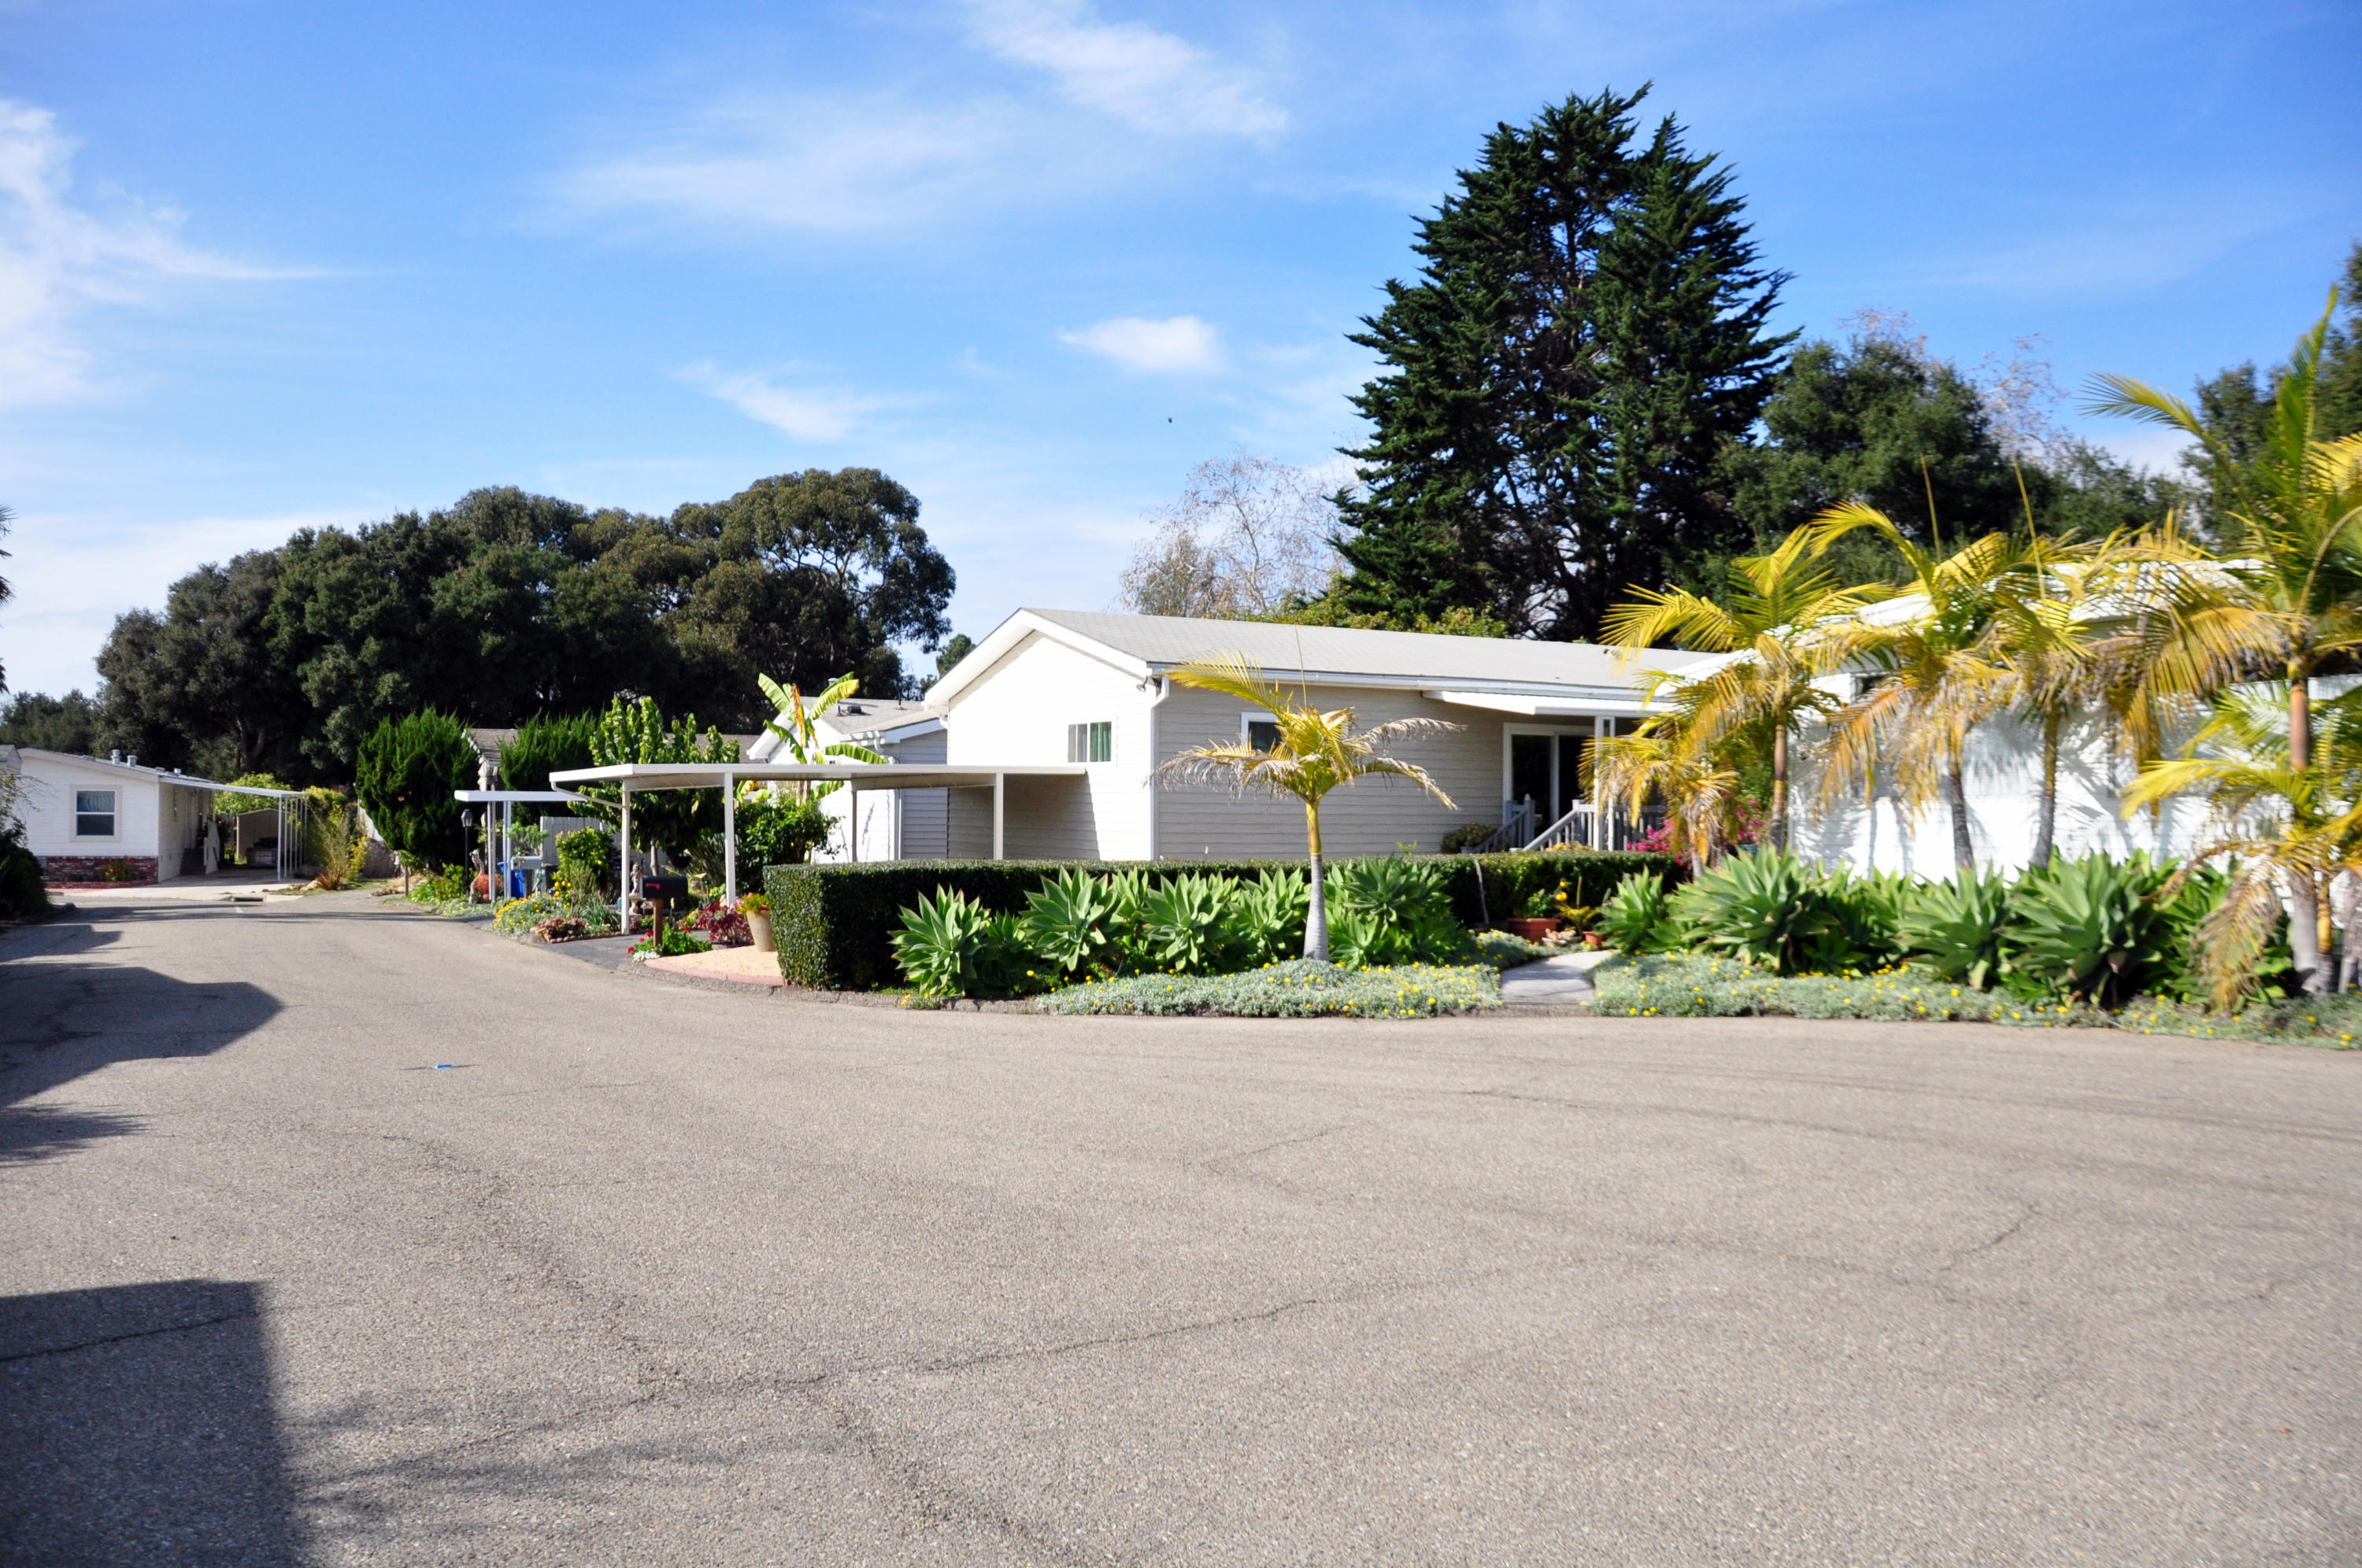 Property photo for 5750 Via Real #268 Carpinteria, California 93013 - 17-269